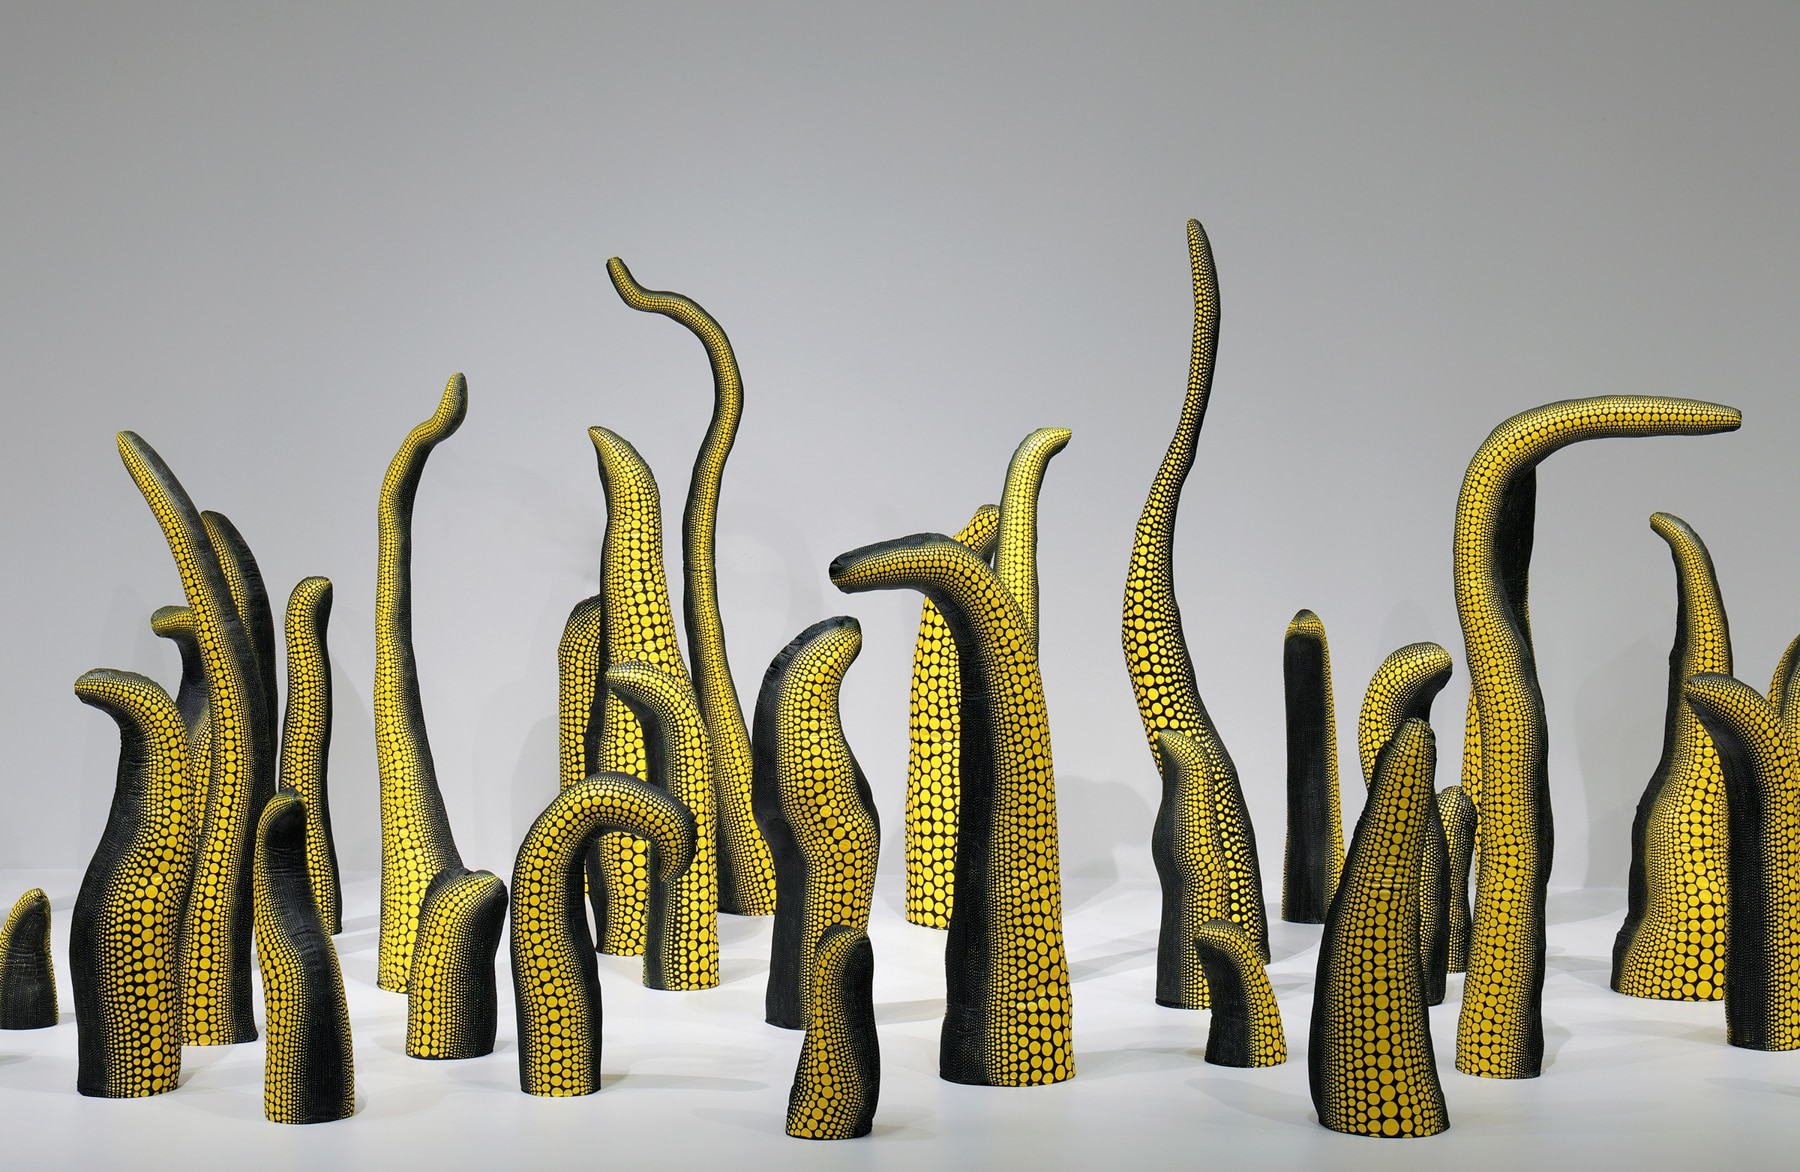 Freeform sculptures covered with yellow polka dots (Hirshhorn Museum)